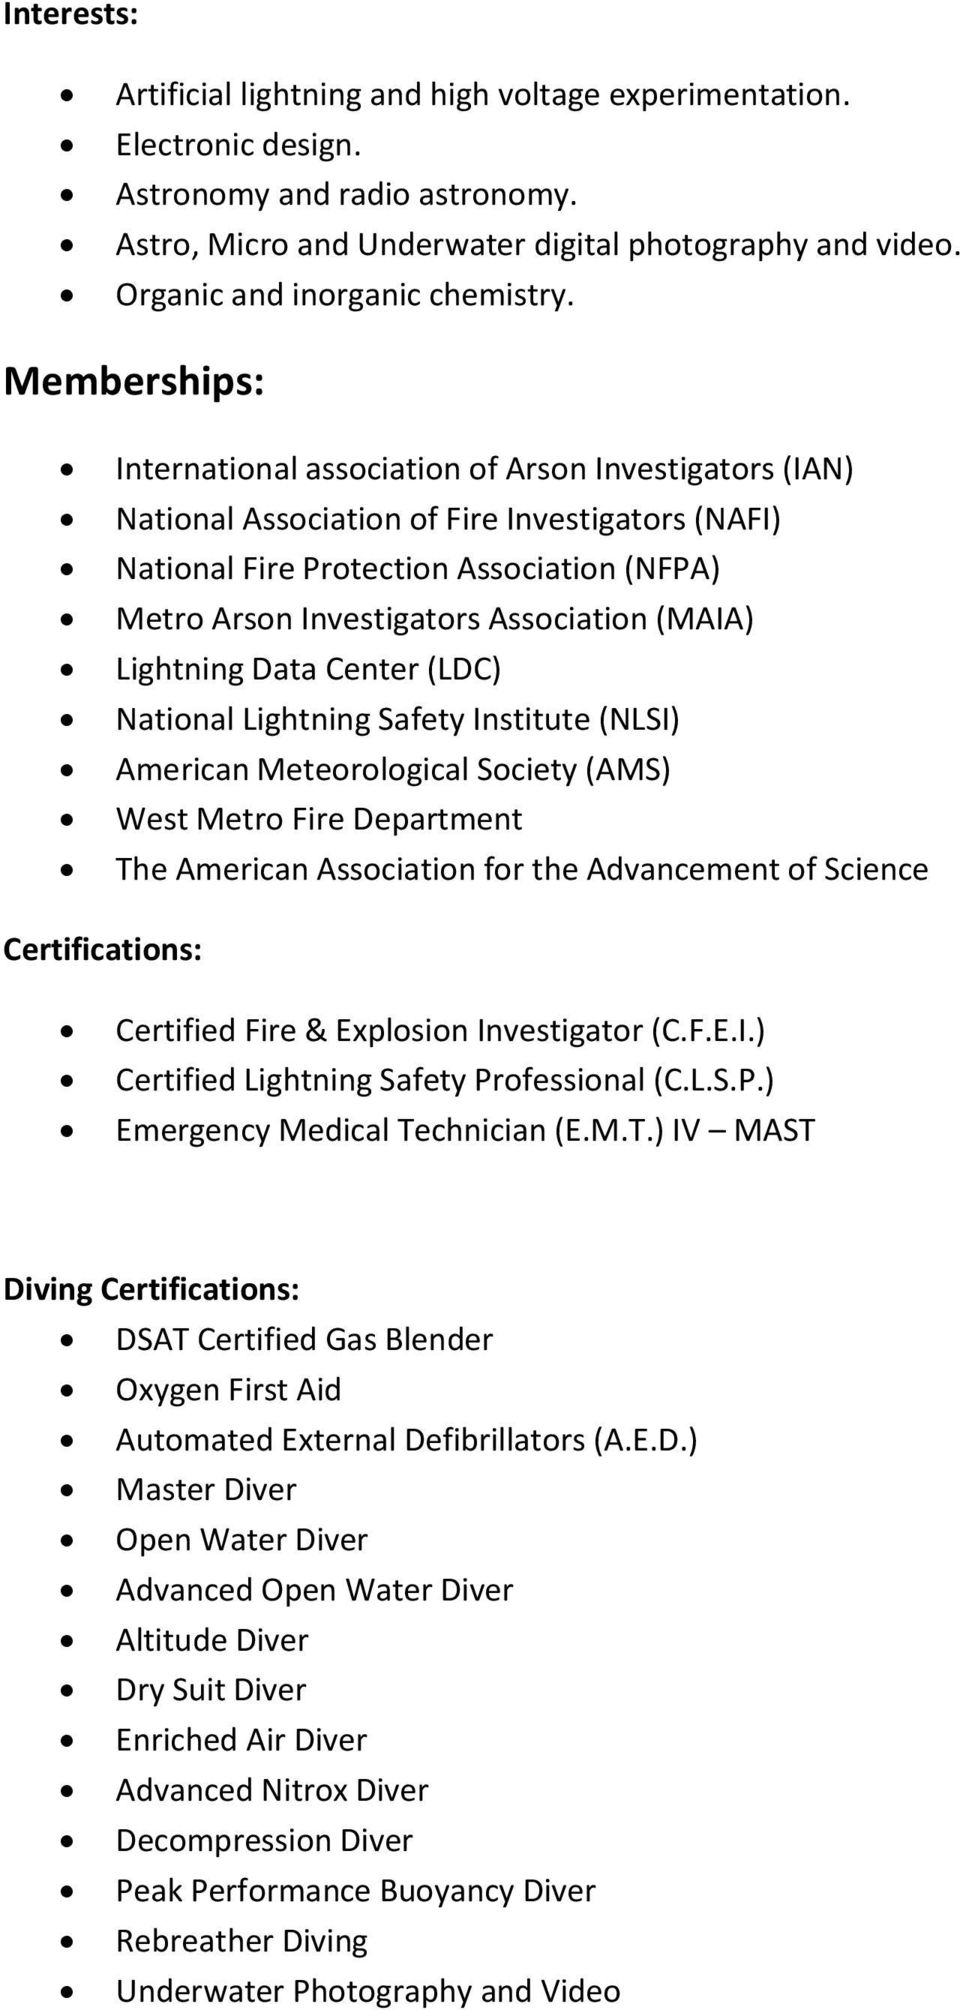 Memberships: International association of Arson Investigators (IAN) National Association of Fire Investigators (NAFI) National Fire Protection Association (NFPA) Metro Arson Investigators Association